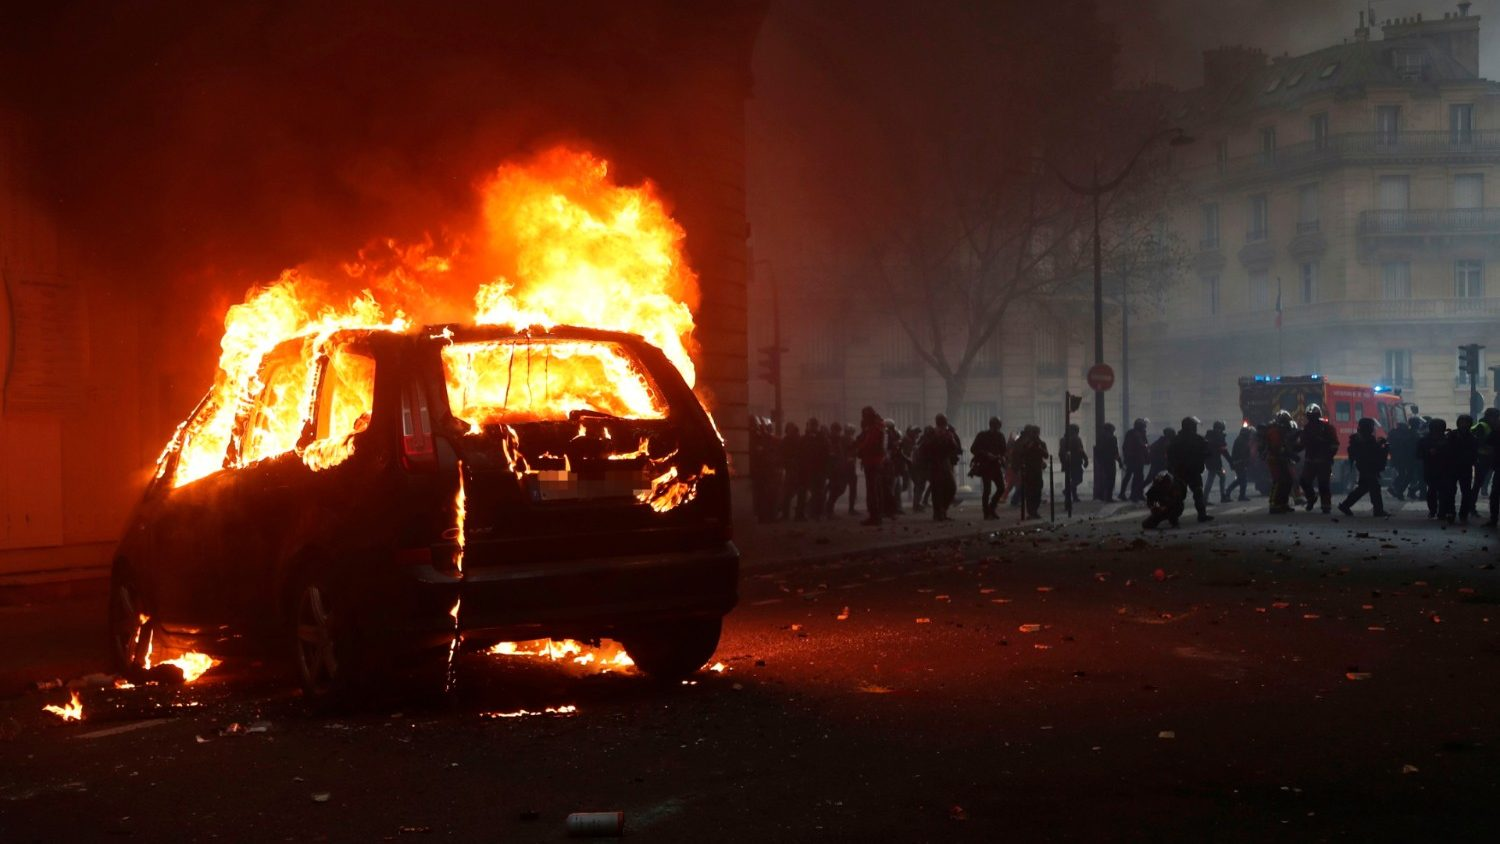 French Bishops call for dialogue  after Paris protests - Vatican News